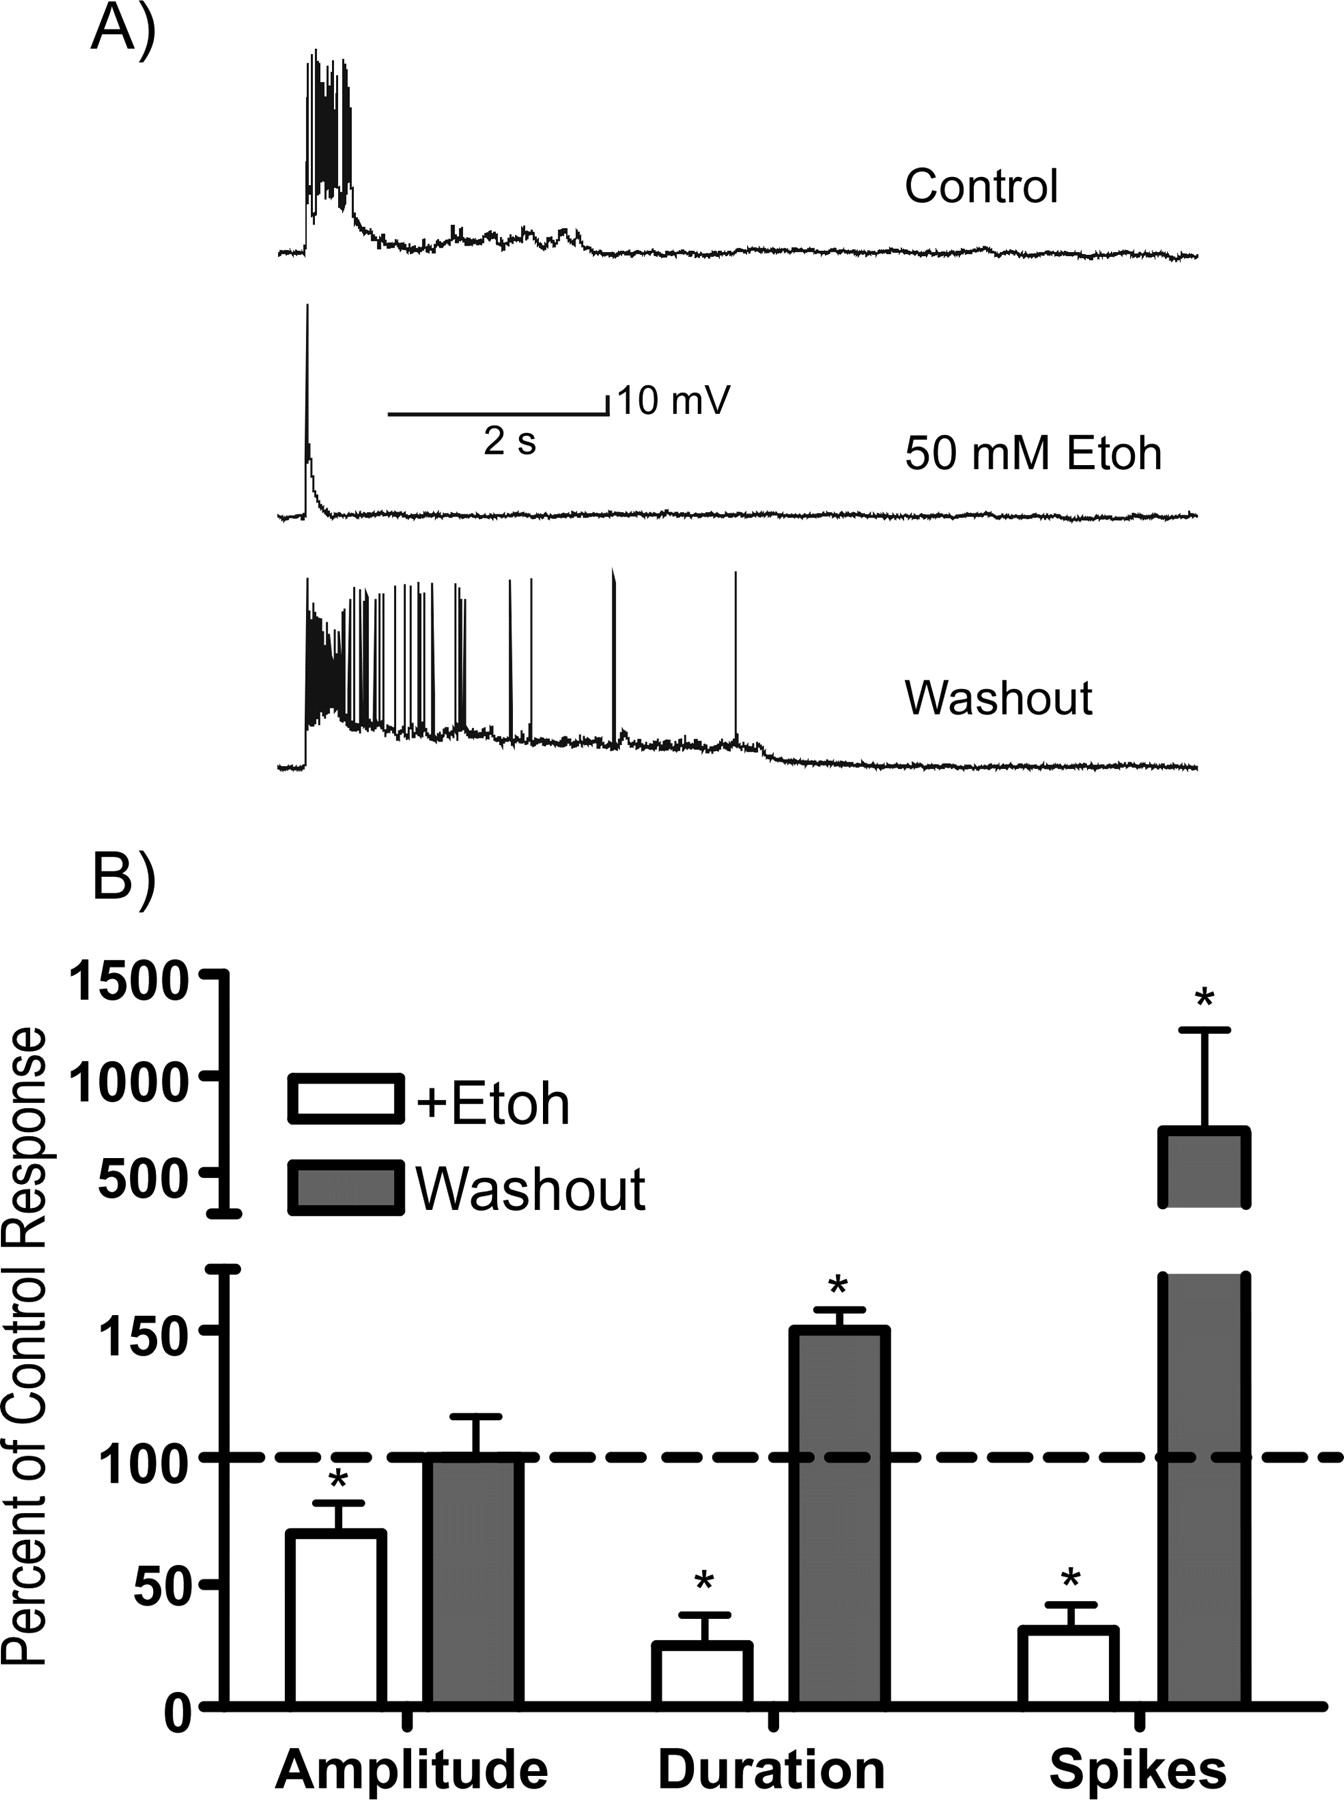 Ethanol inhibits persistent activity in prefrontal cortical neurons download figure ccuart Image collections